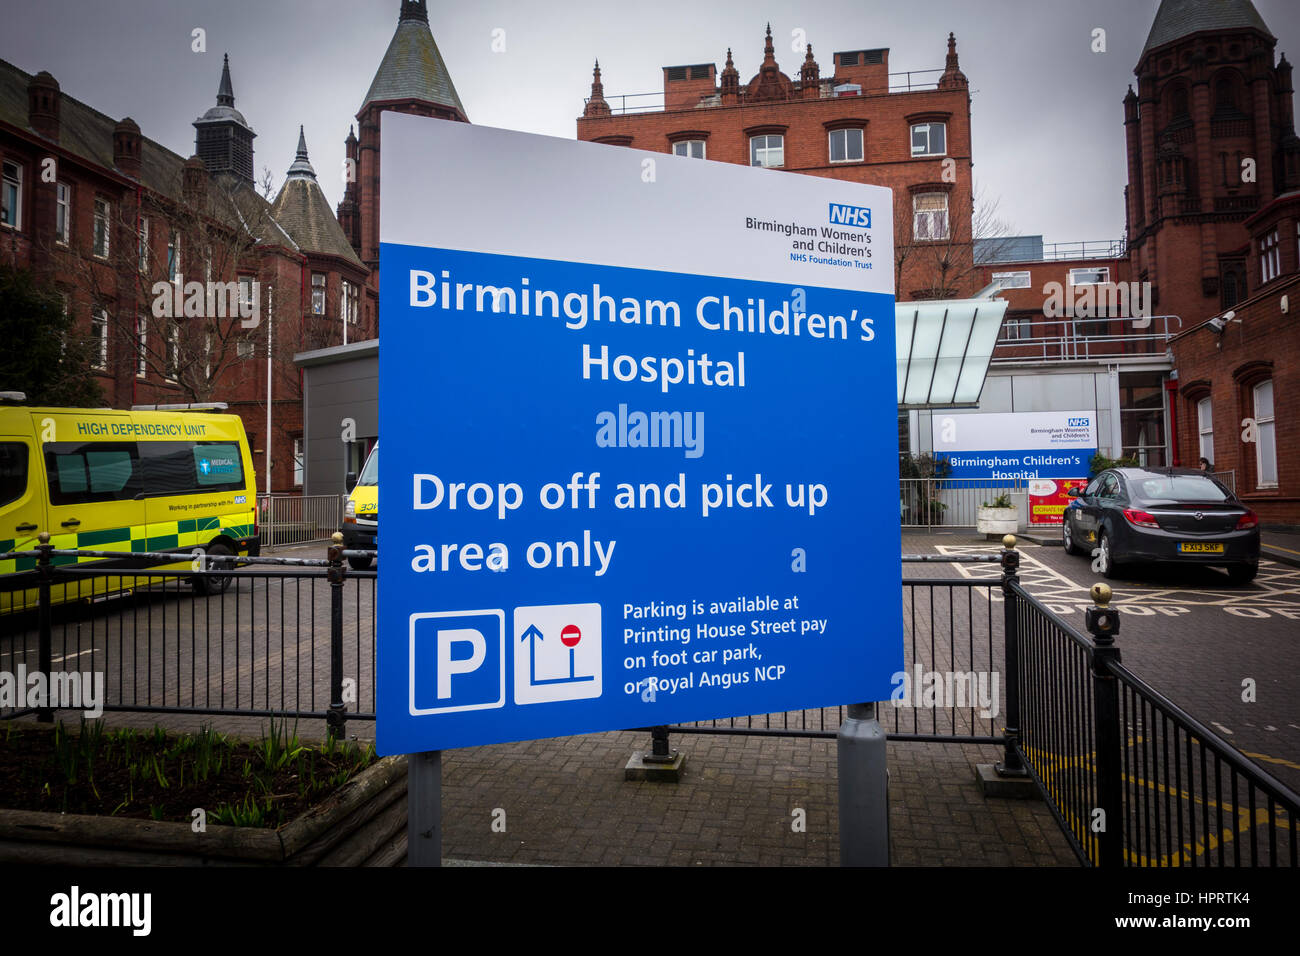 Sign outside the entrance to Birmingham Women's and Children's Hospital, Bermingham, West Midlands, UK - Stock Image